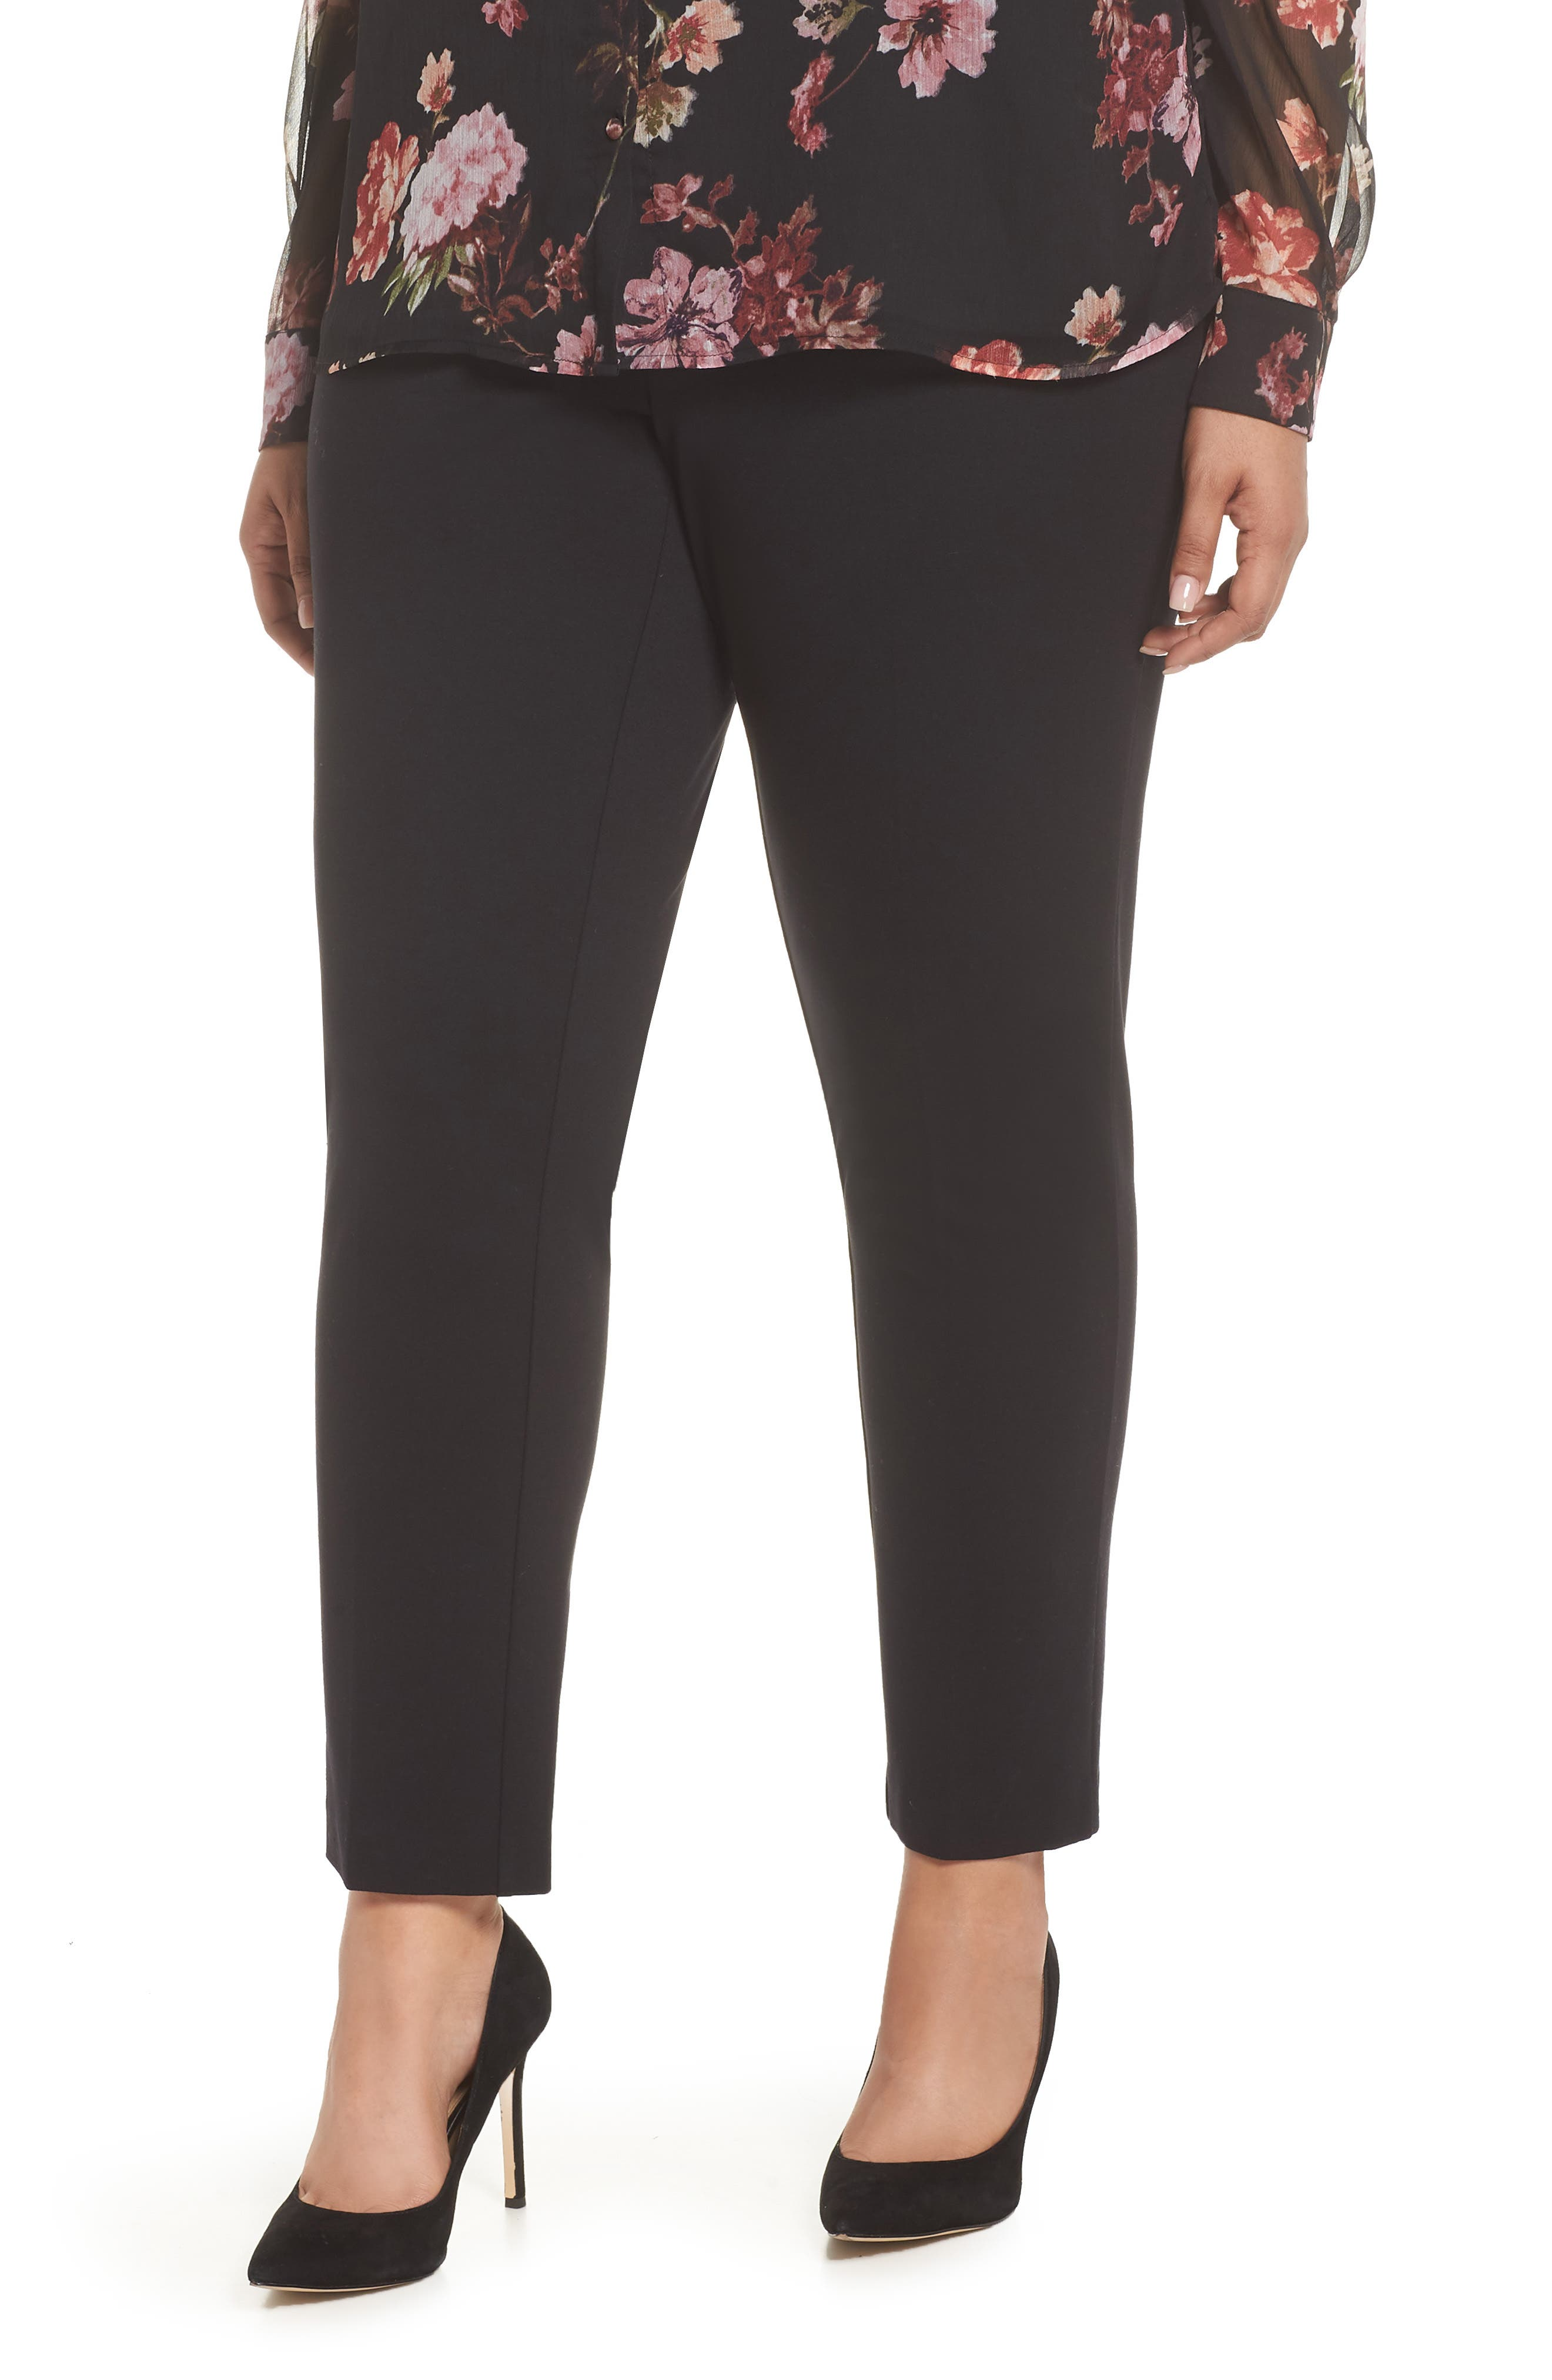 VINCE CAMUTO, High Rise Ankle Skinny Ponte Pants, Main thumbnail 1, color, RICH BLACK